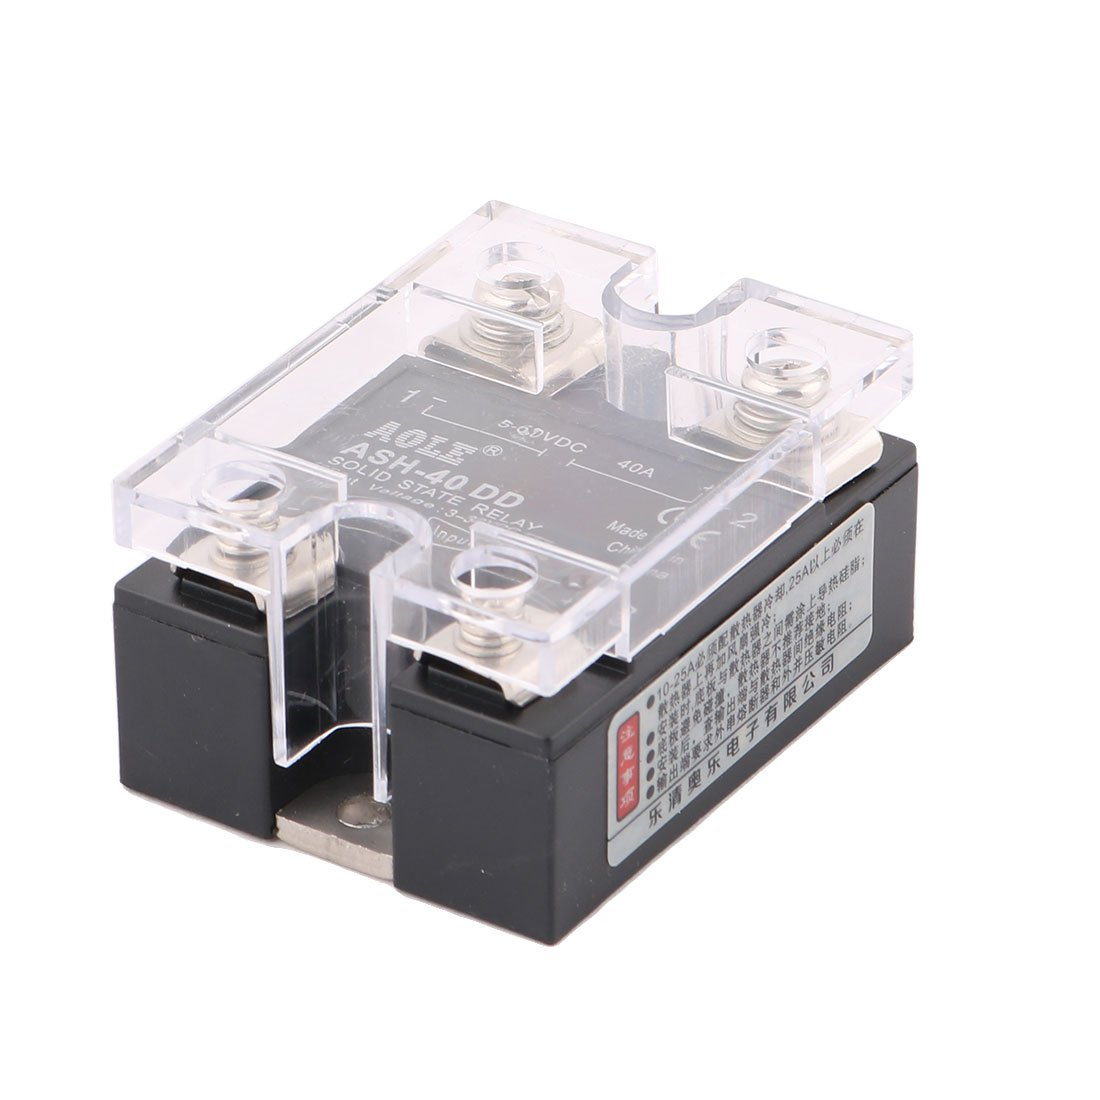 Uxcell Ash 40dd 3 32vdc To 5 60vdc 40a Single Phase Solid State Dc Relay Medium Power Acsolid